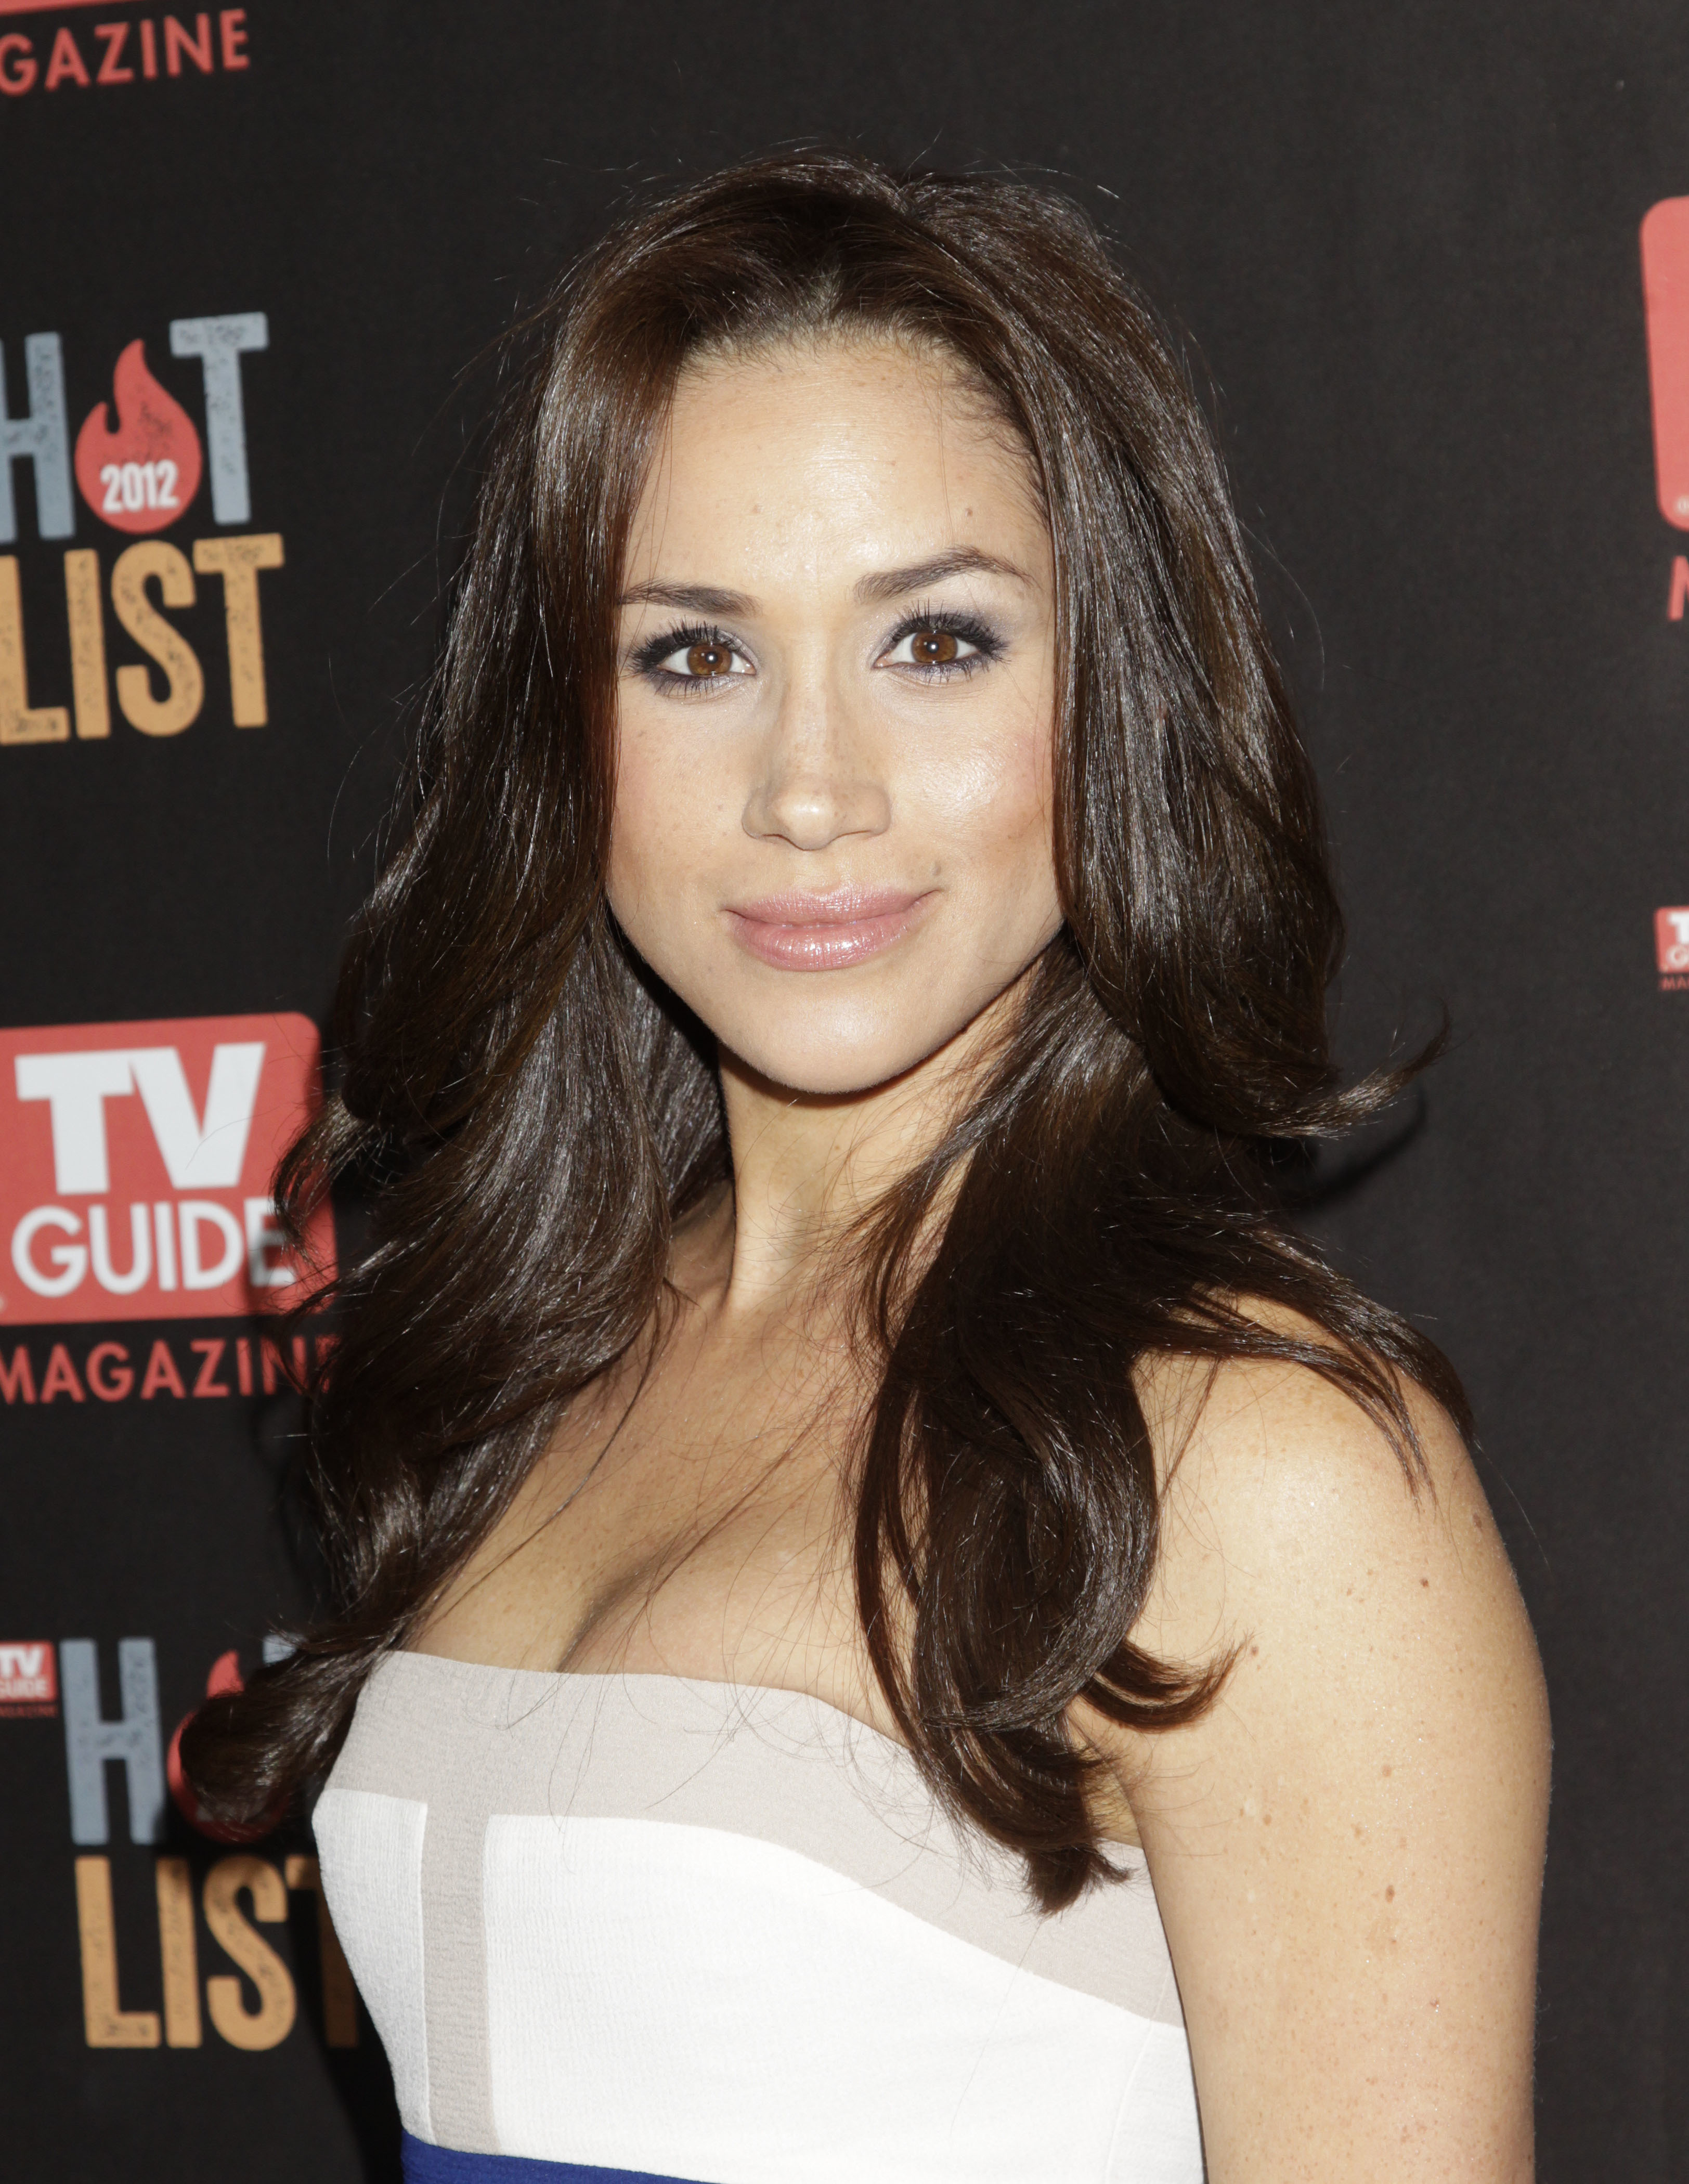 Meghan Markle arrives at the TV Guide Magazine Annual Hot List Party on November 12, 2012, in West Hollywood, California.